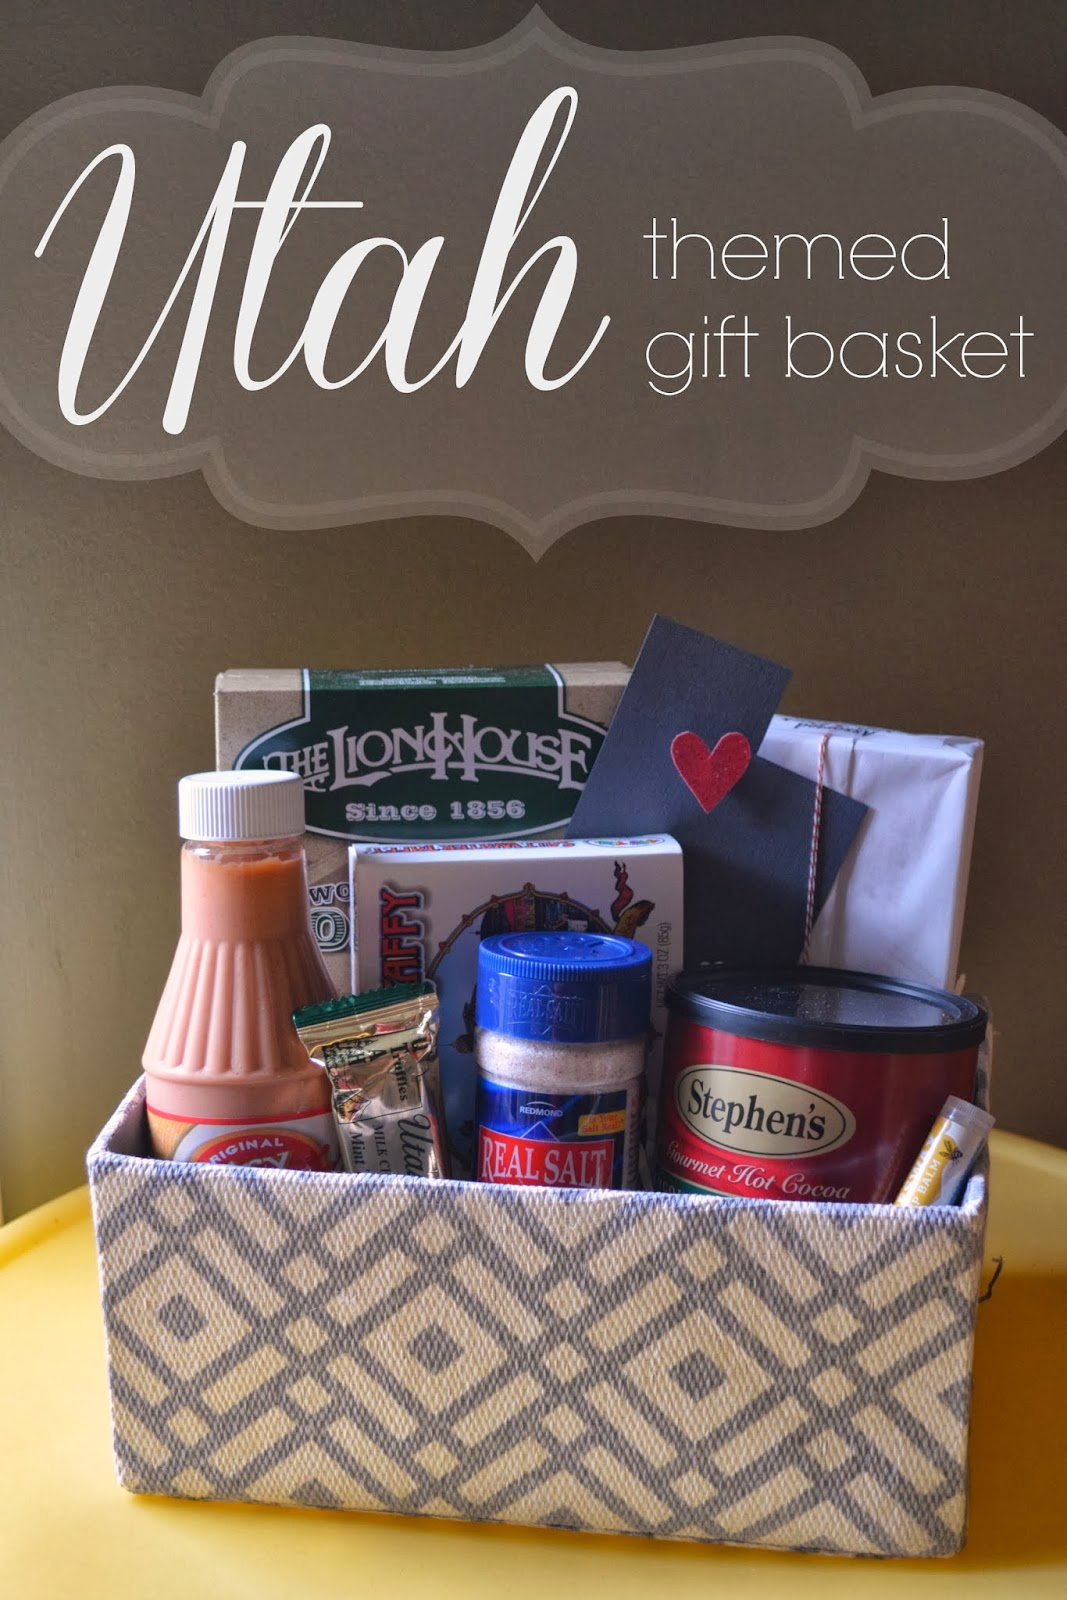 Utah Themed Gift Basket - A Little Tipsy